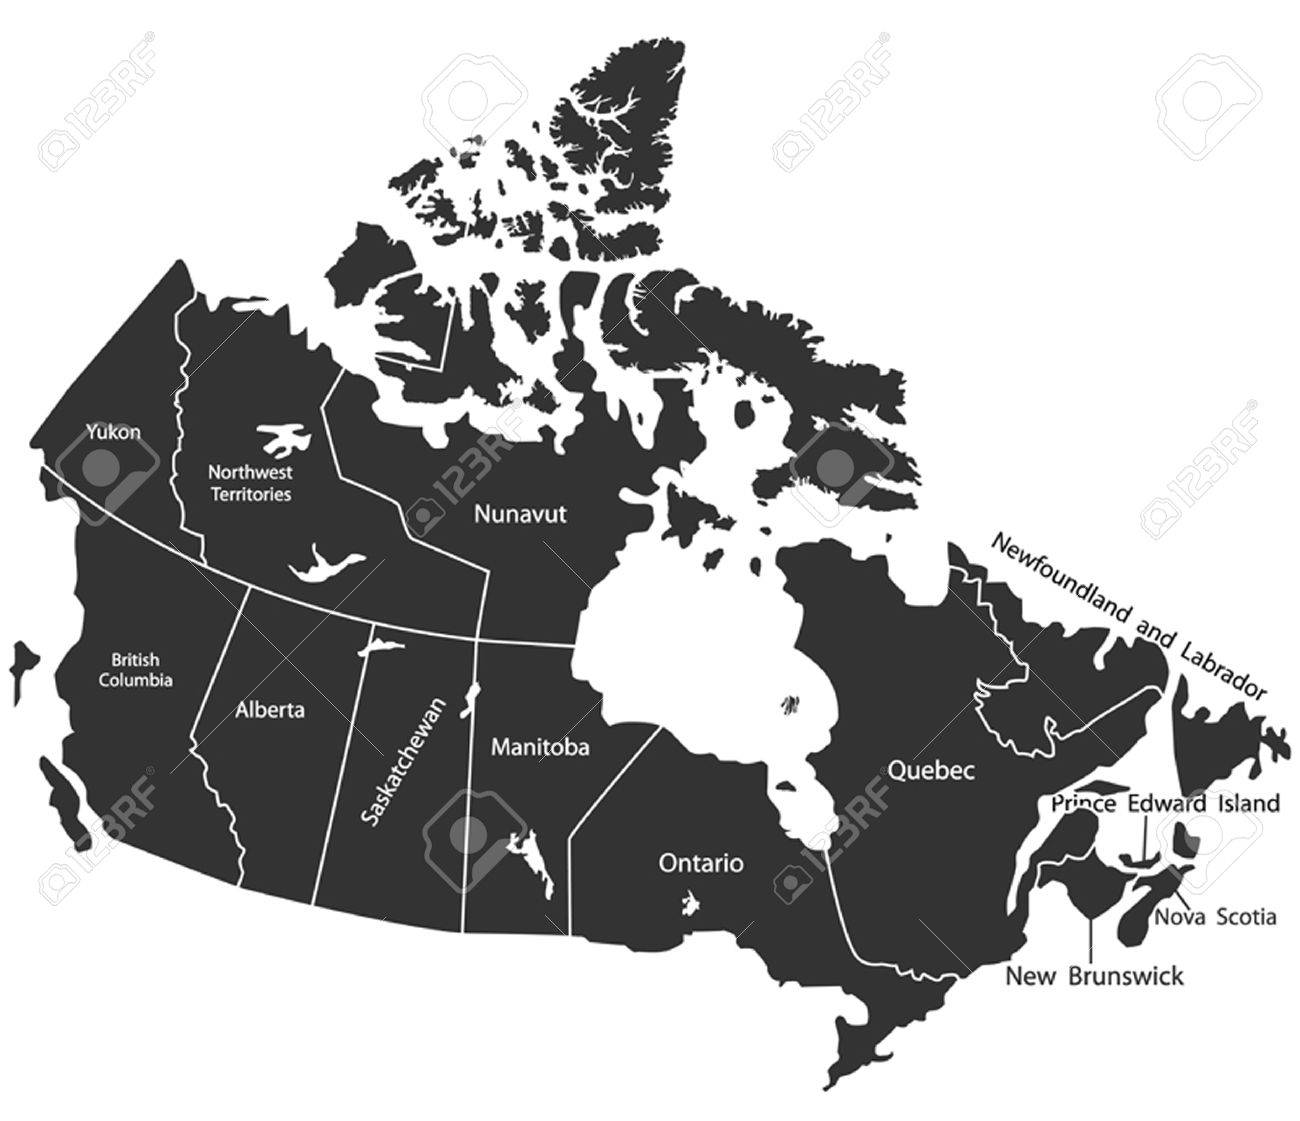 Canada Map Images Stock Pictures Royalty Free Canada Map Photos - Free vector map of us and canada